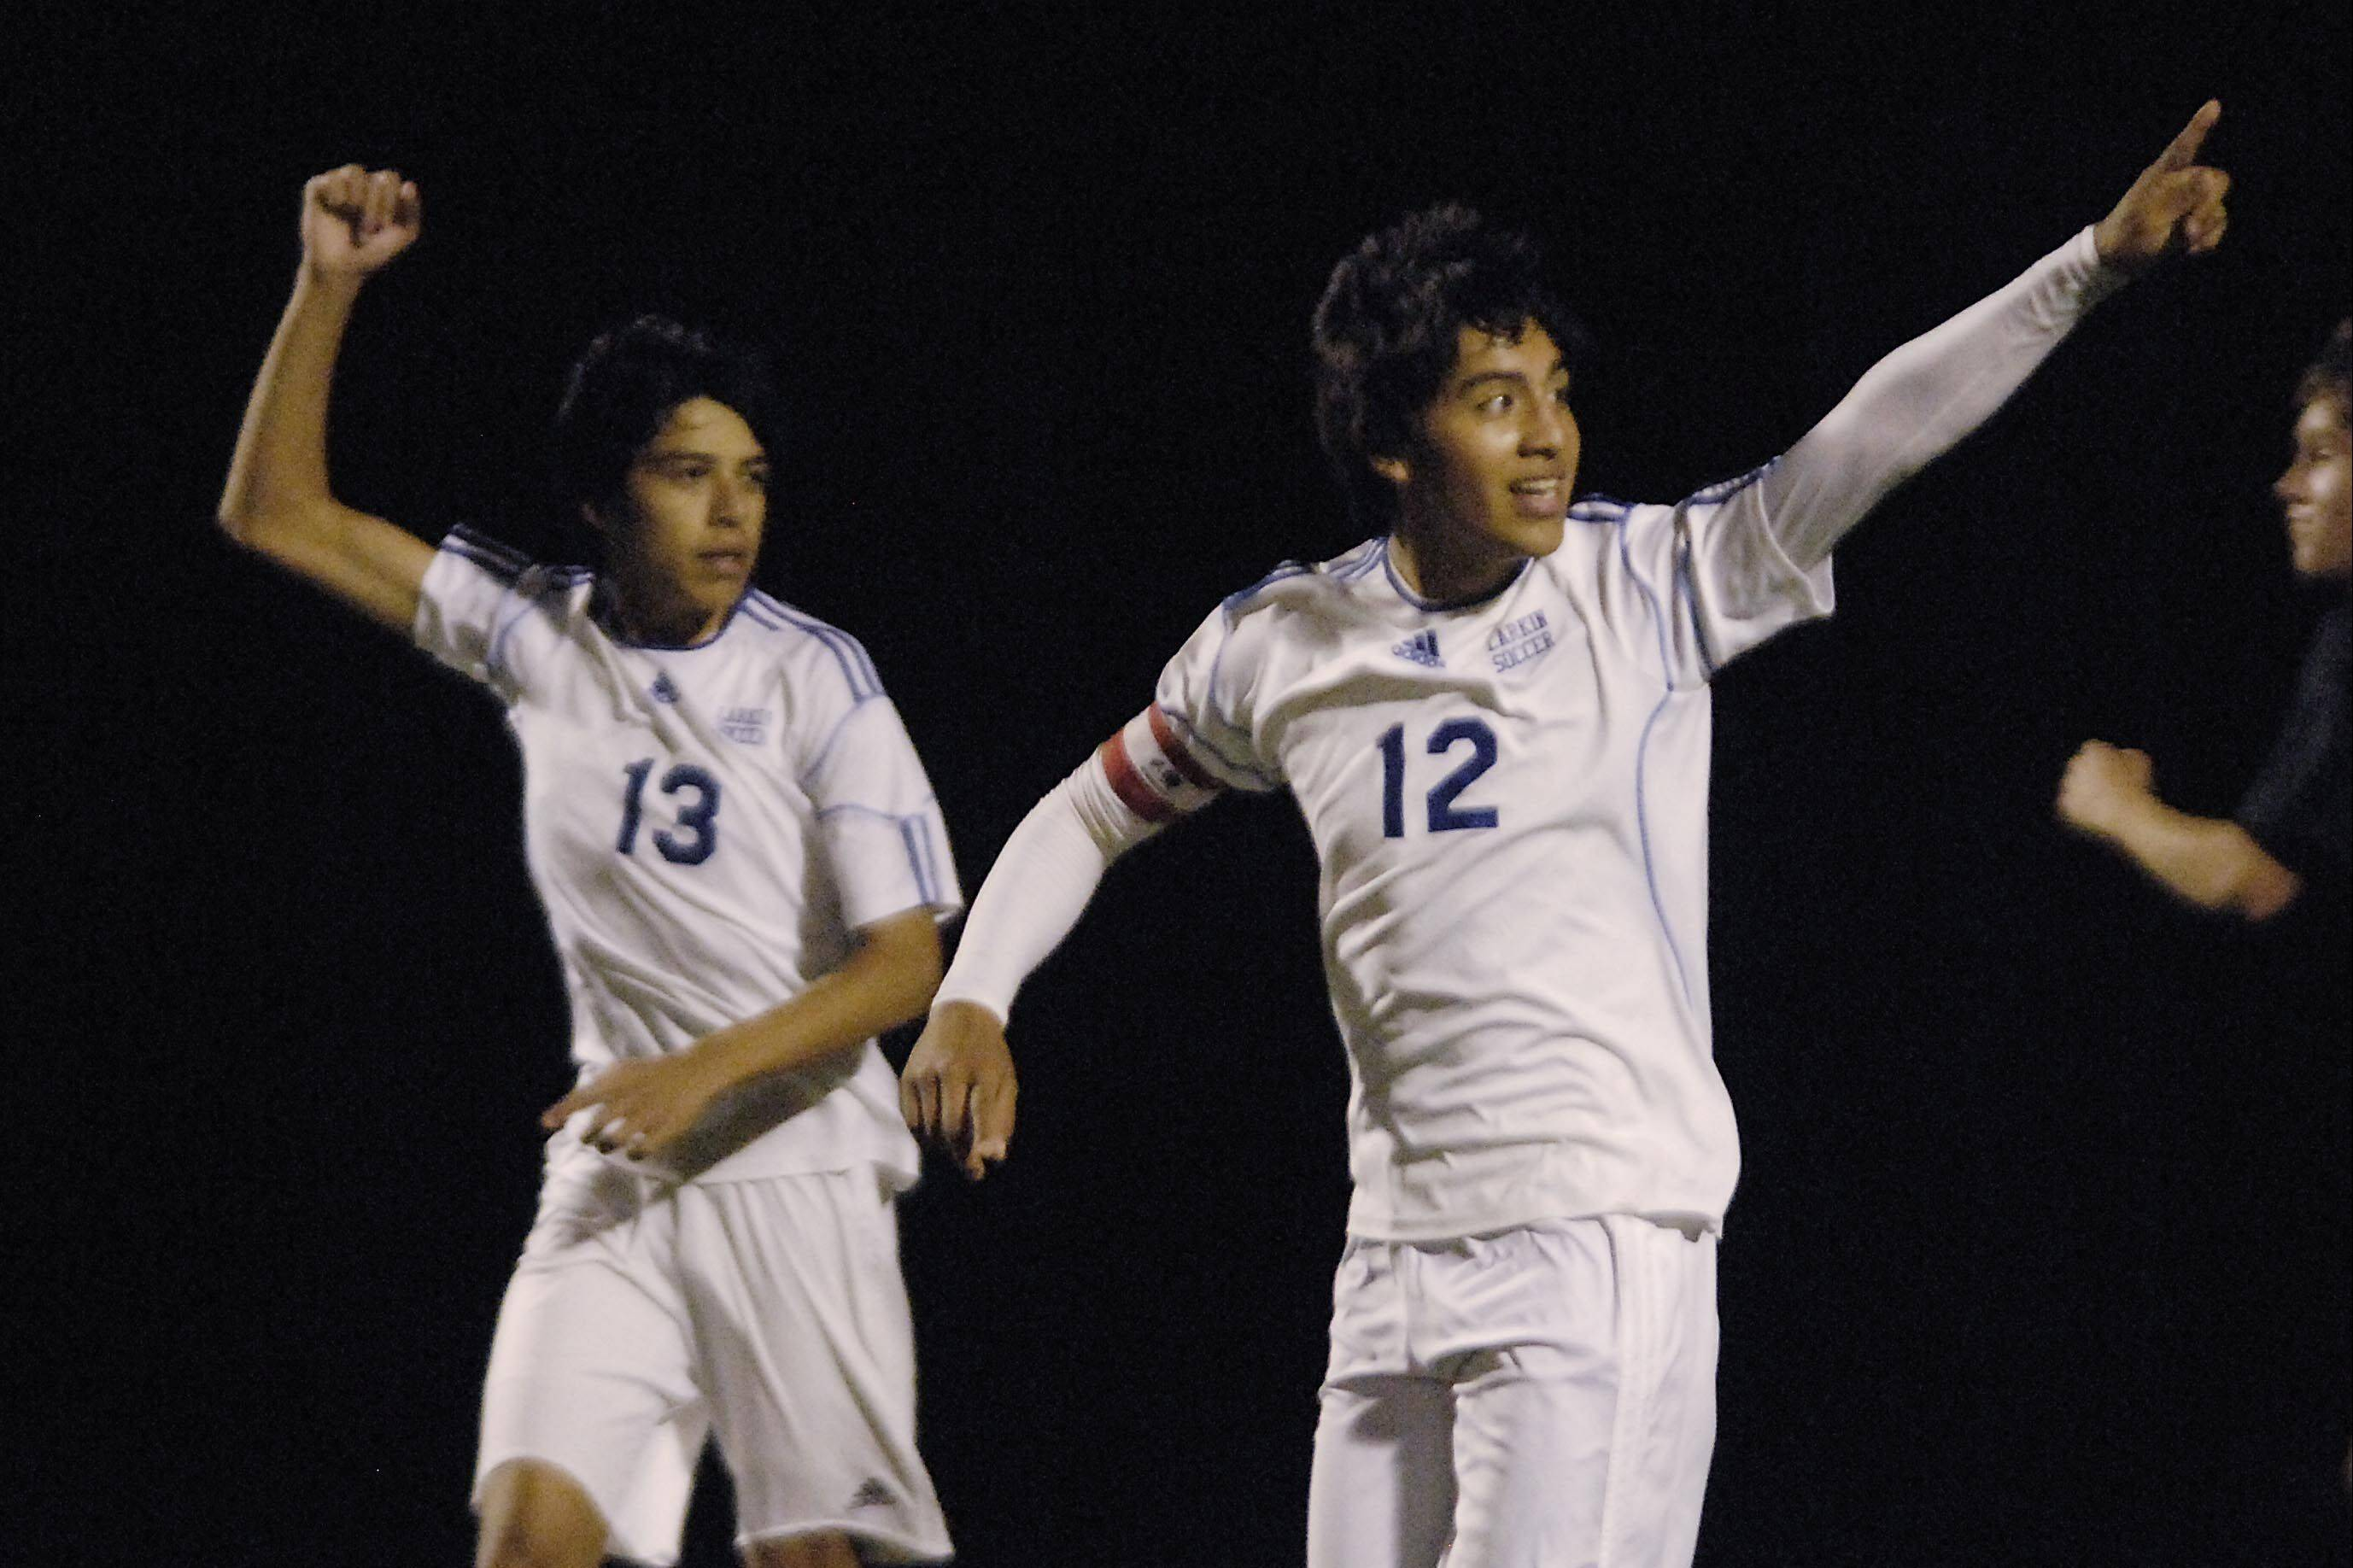 Larkin's Hector Mendoza, left, and Tony Hernandez celebrate Mendoza's first-half goal against York on Tuesday in the Schaumburg regional. Both players scored in the 3-1 Royals win.